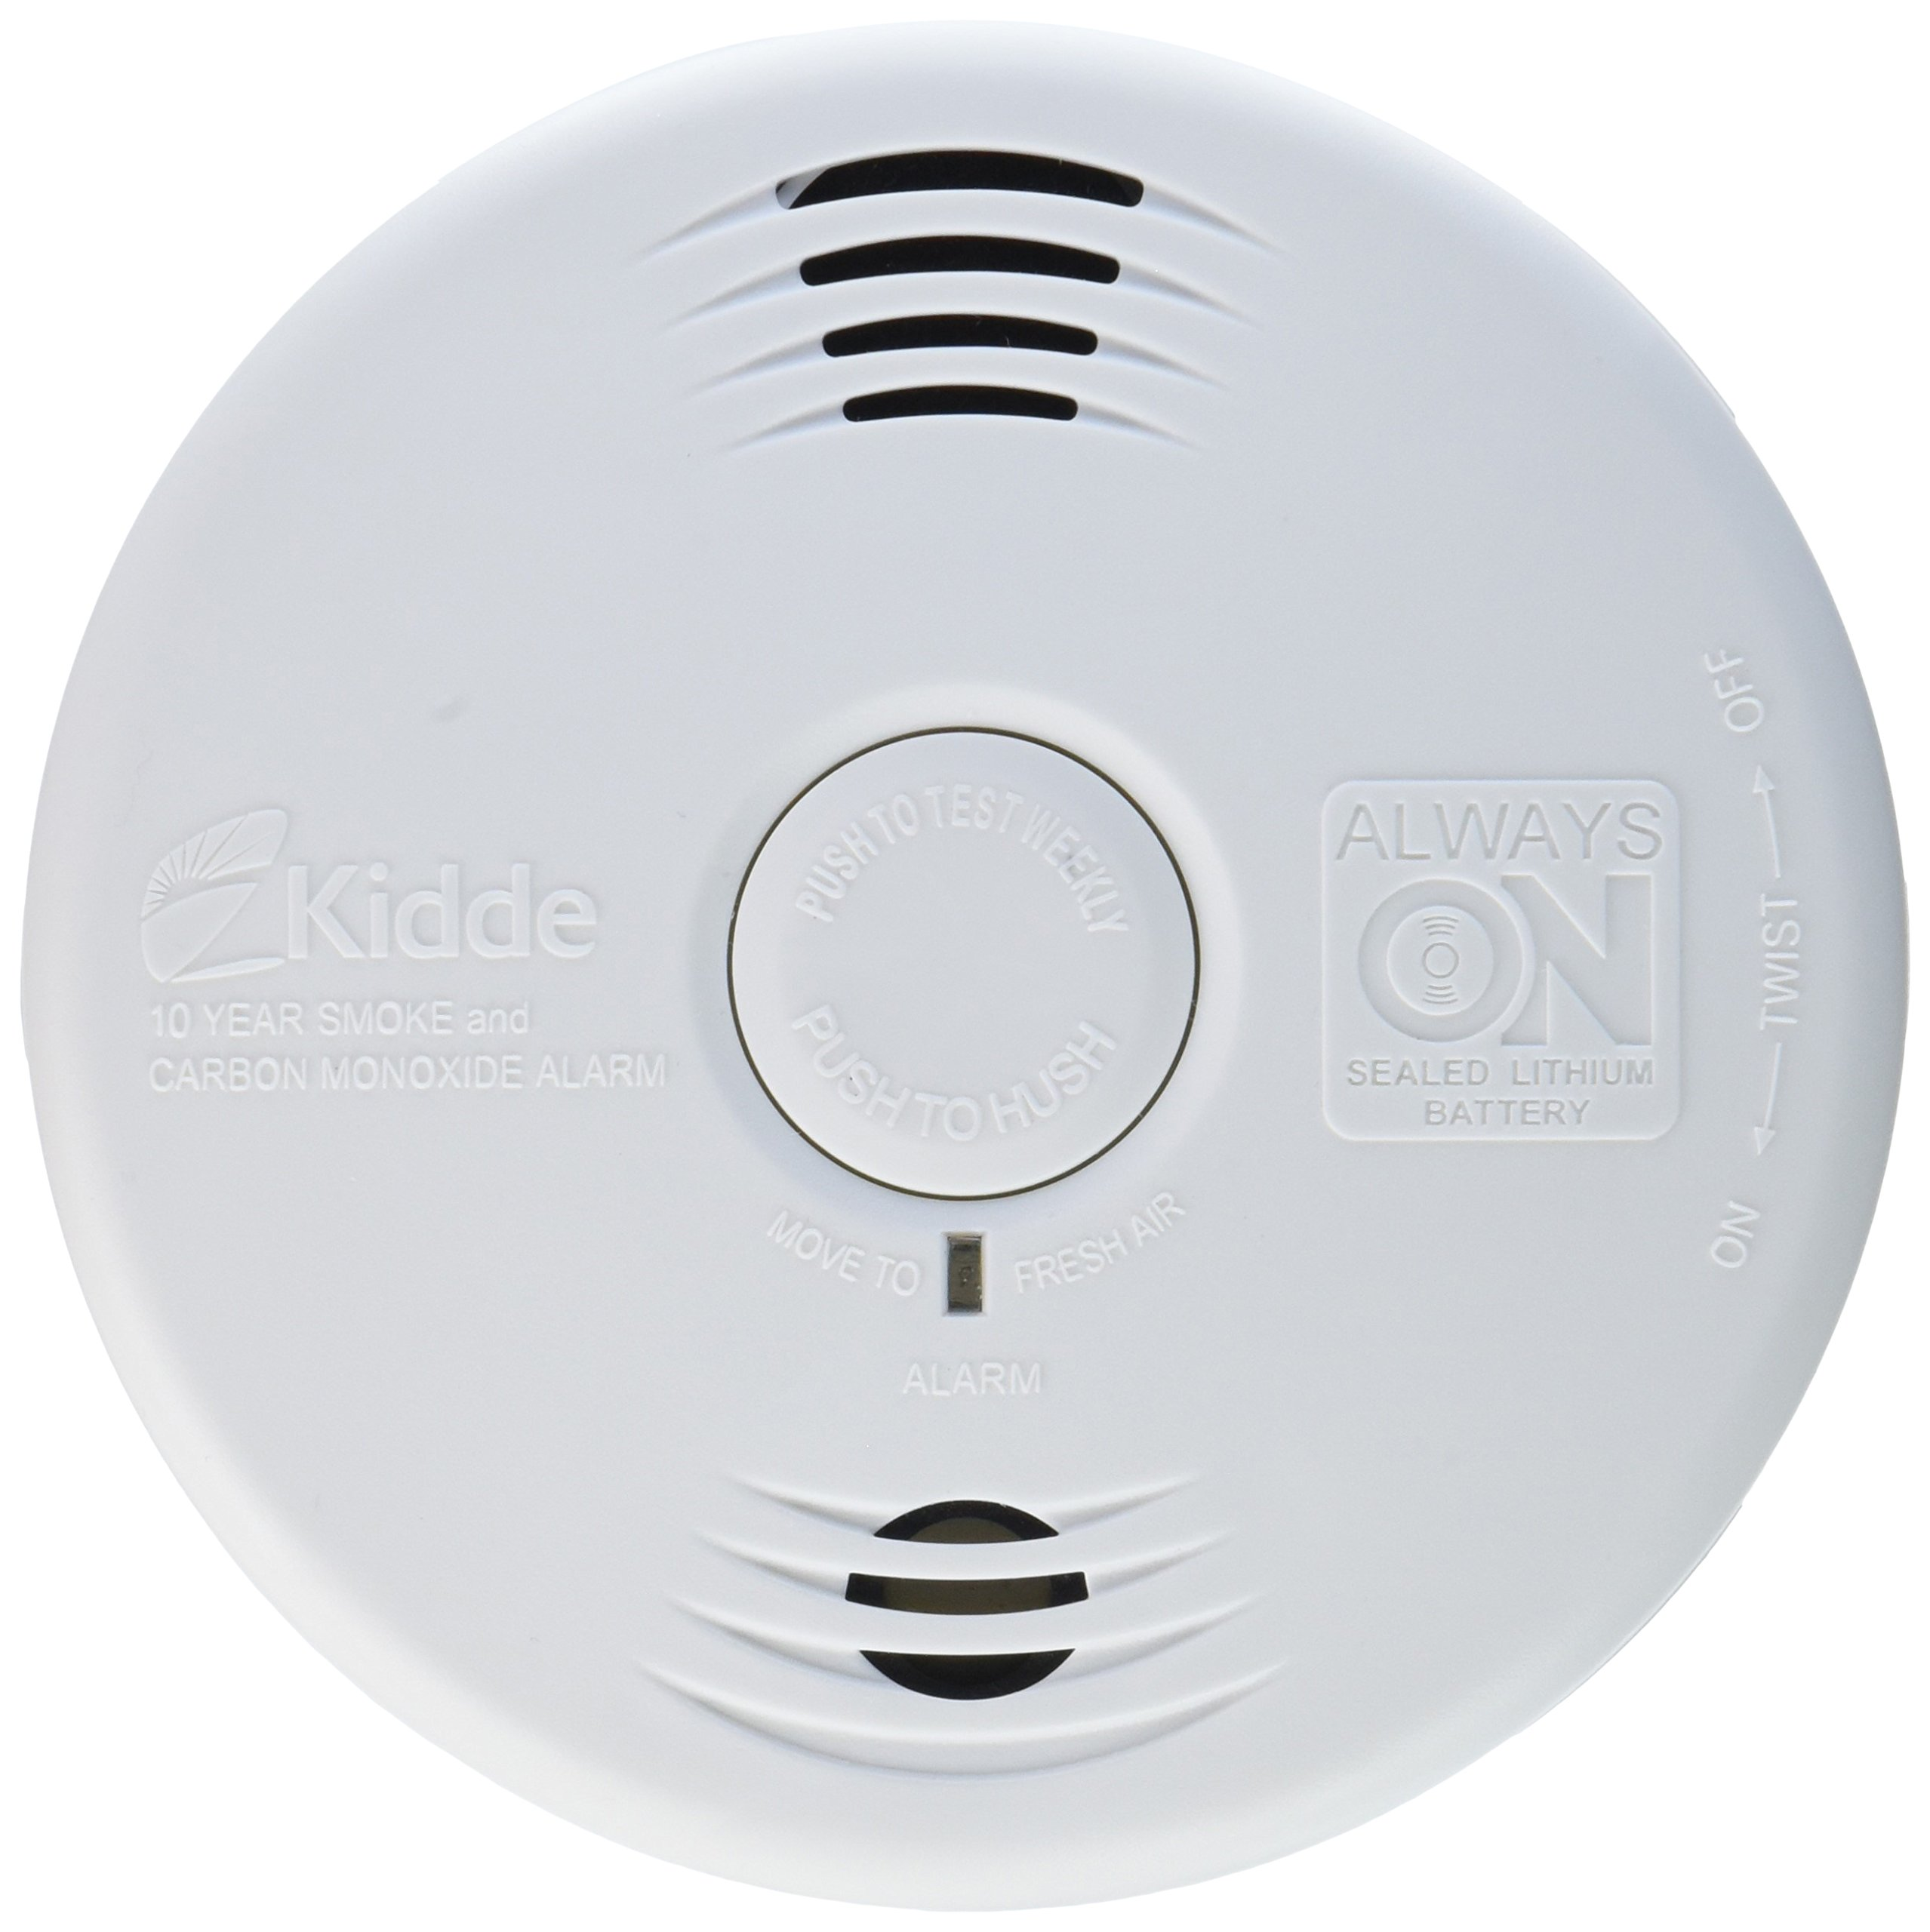 Worry-Free Combination Smoke & Carbon Monoxide Alarm with Lithium Battery P3010CU by Kidde